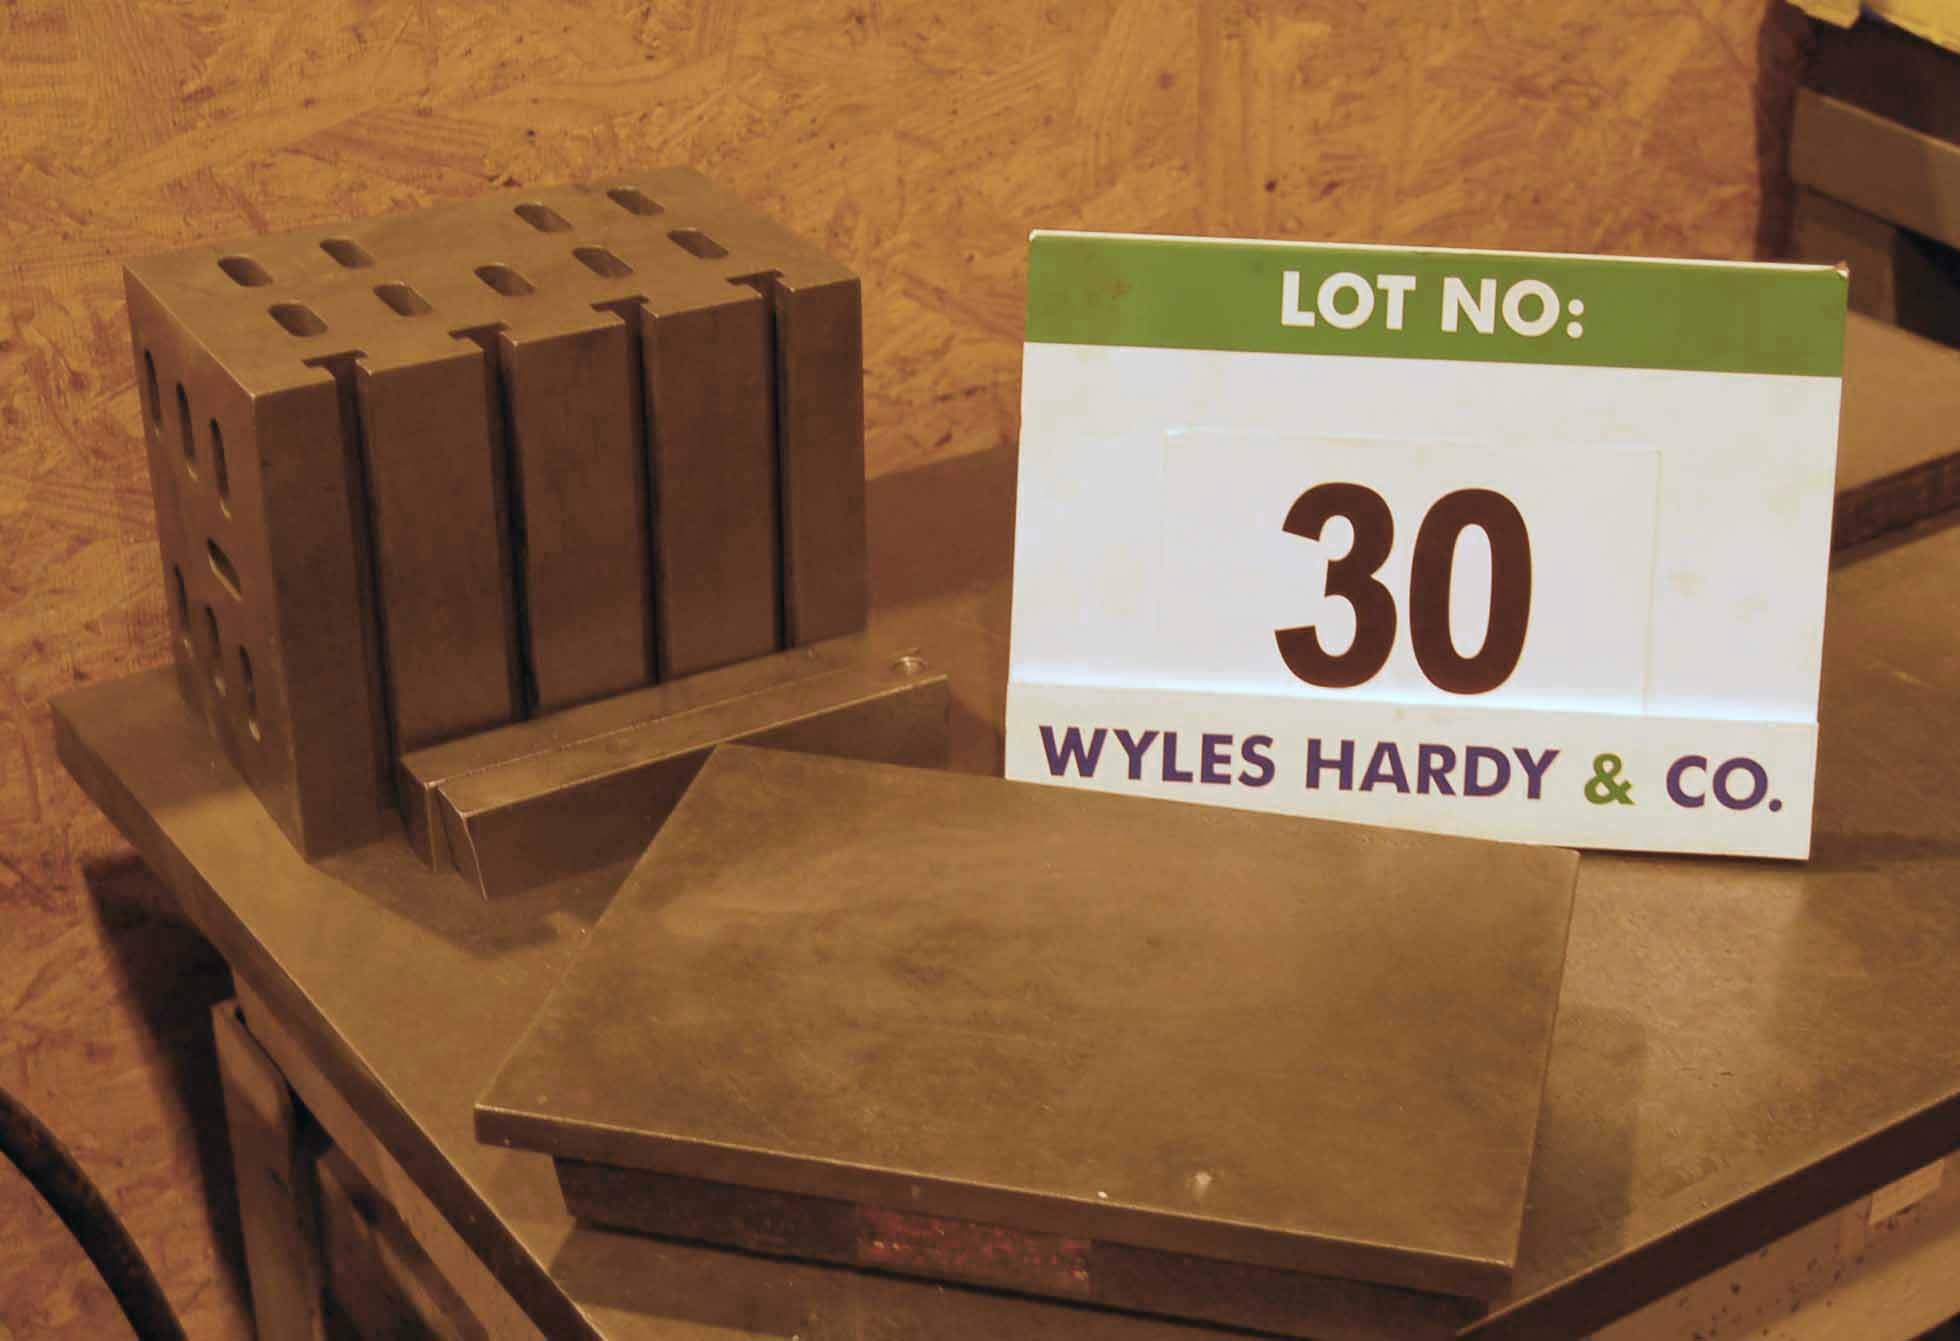 Lot 30 - A 235mm x 150mm x 185mm T-Slotted Measuring Block with A 305mm x 230mm Surface Plate